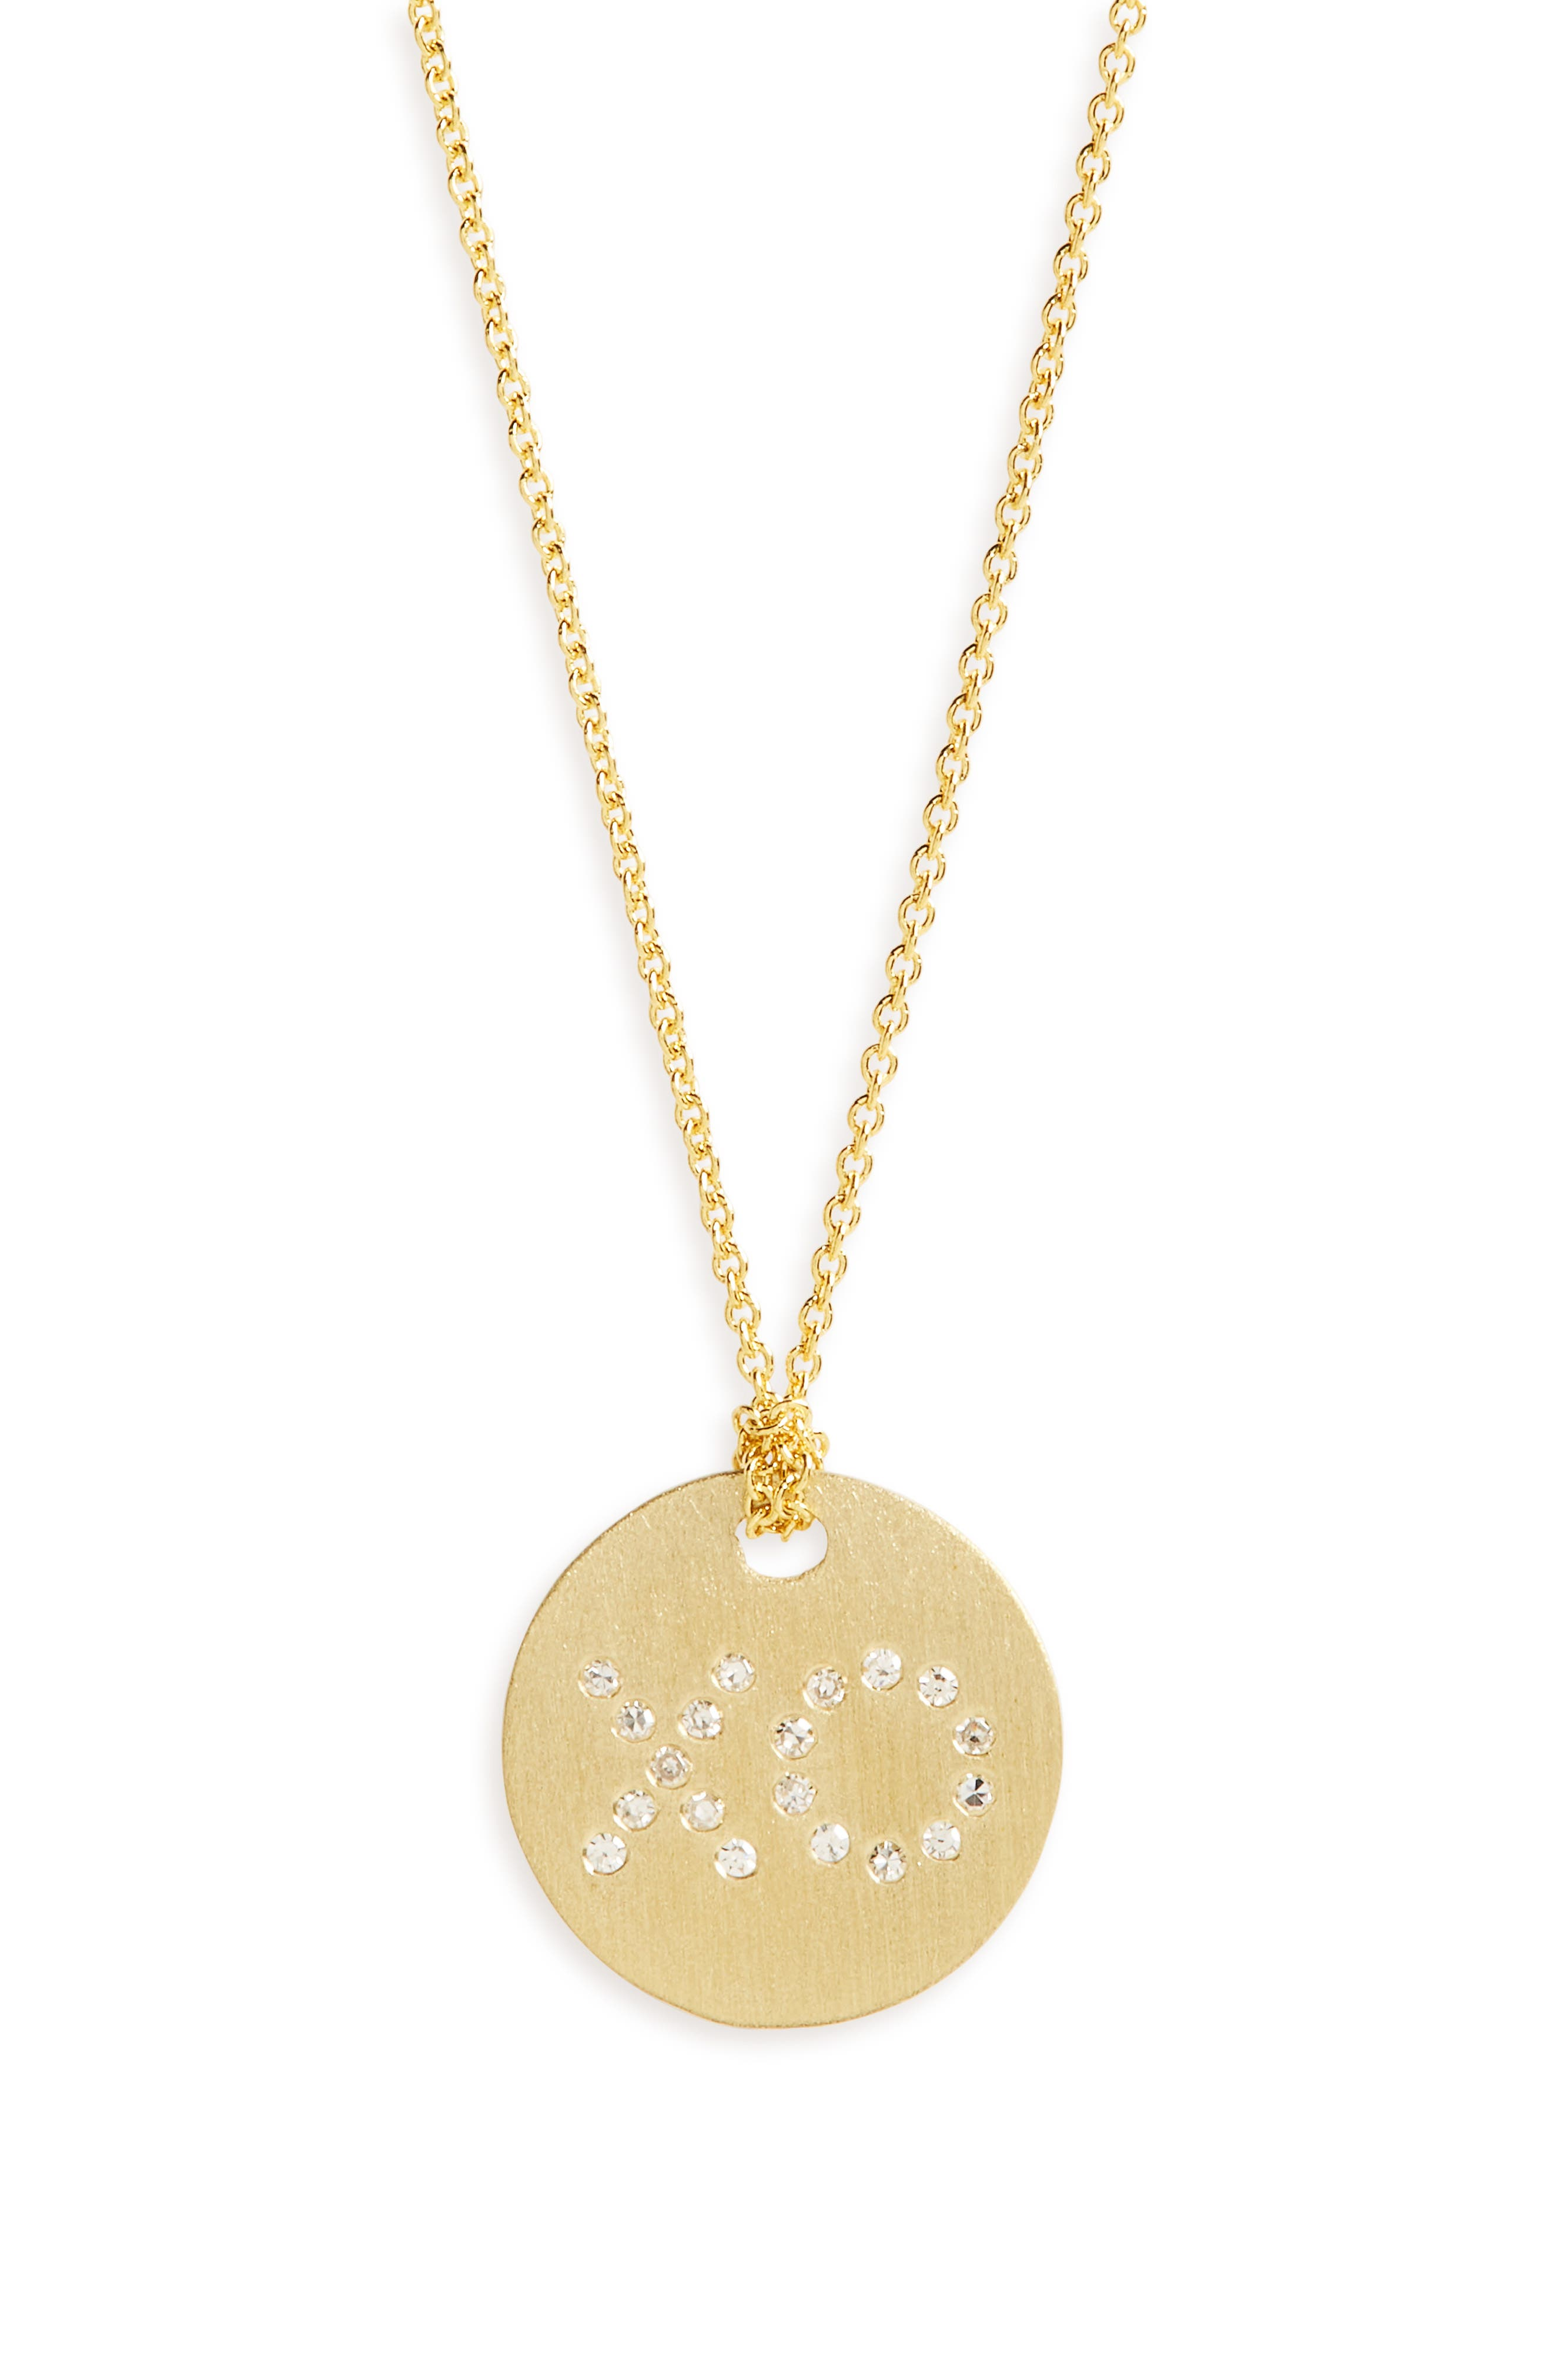 Diamond XO Medallion Necklace,                             Main thumbnail 1, color,                             YELLOW GOLD